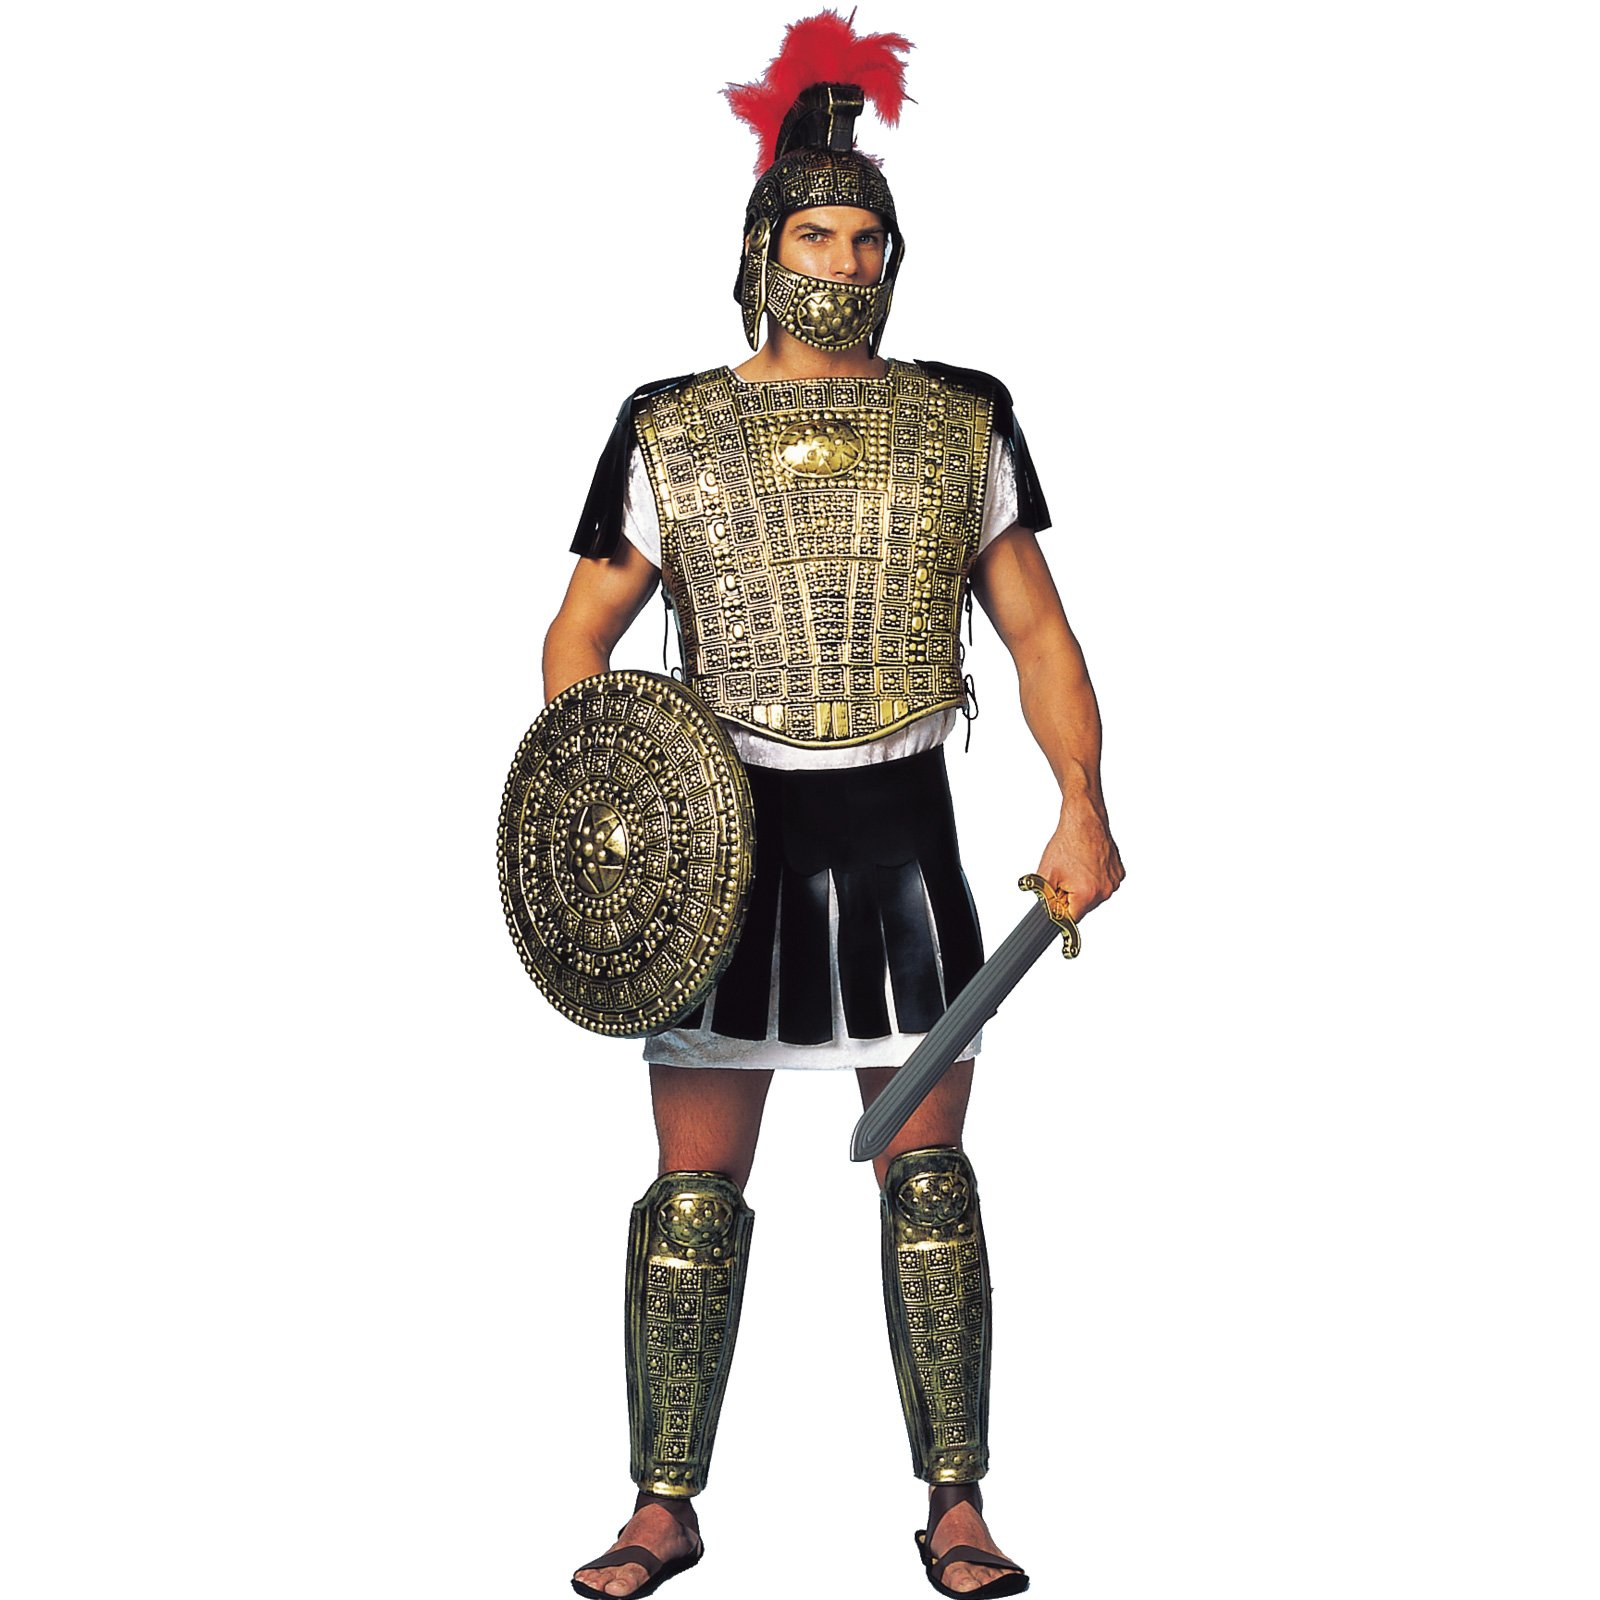 Free Picture Of A Roman Soldier Download Free Clip Art